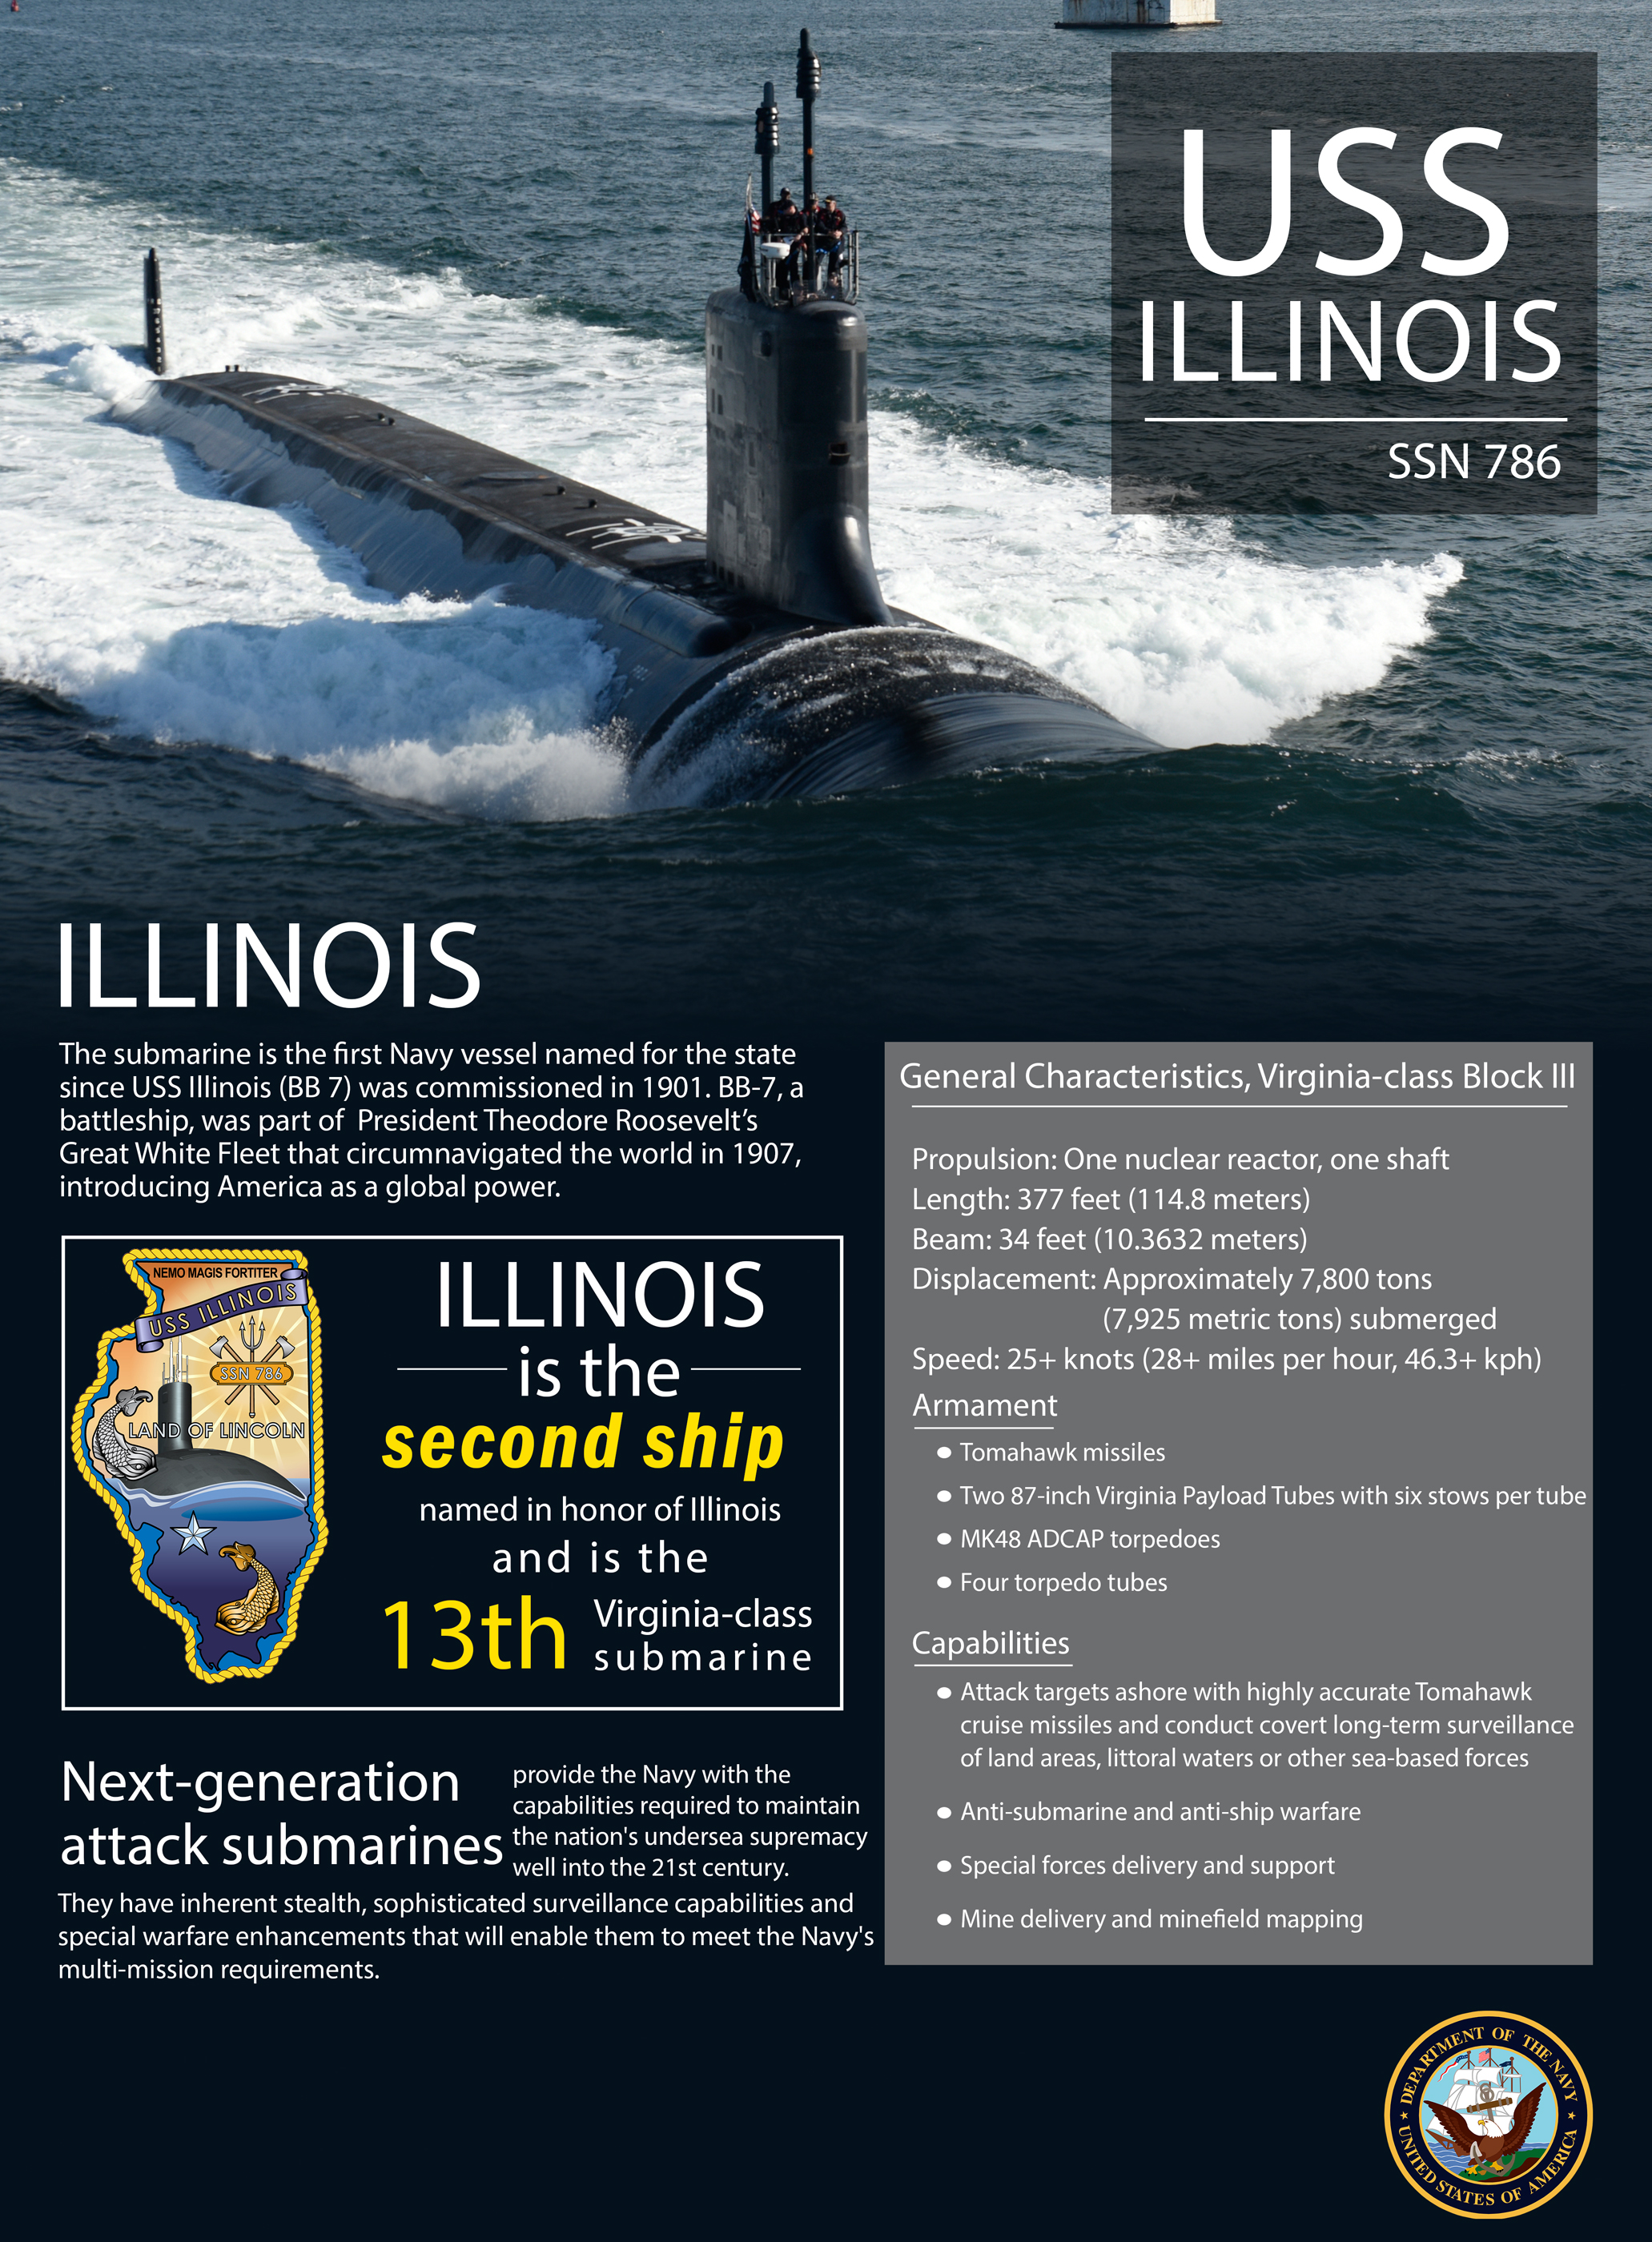 <Kliknij by poiwiększyć>  USS Illinois (SSN-786) - infografika /Fot. U.S. Navy/Petty Officer 2nd Class George M. Bell